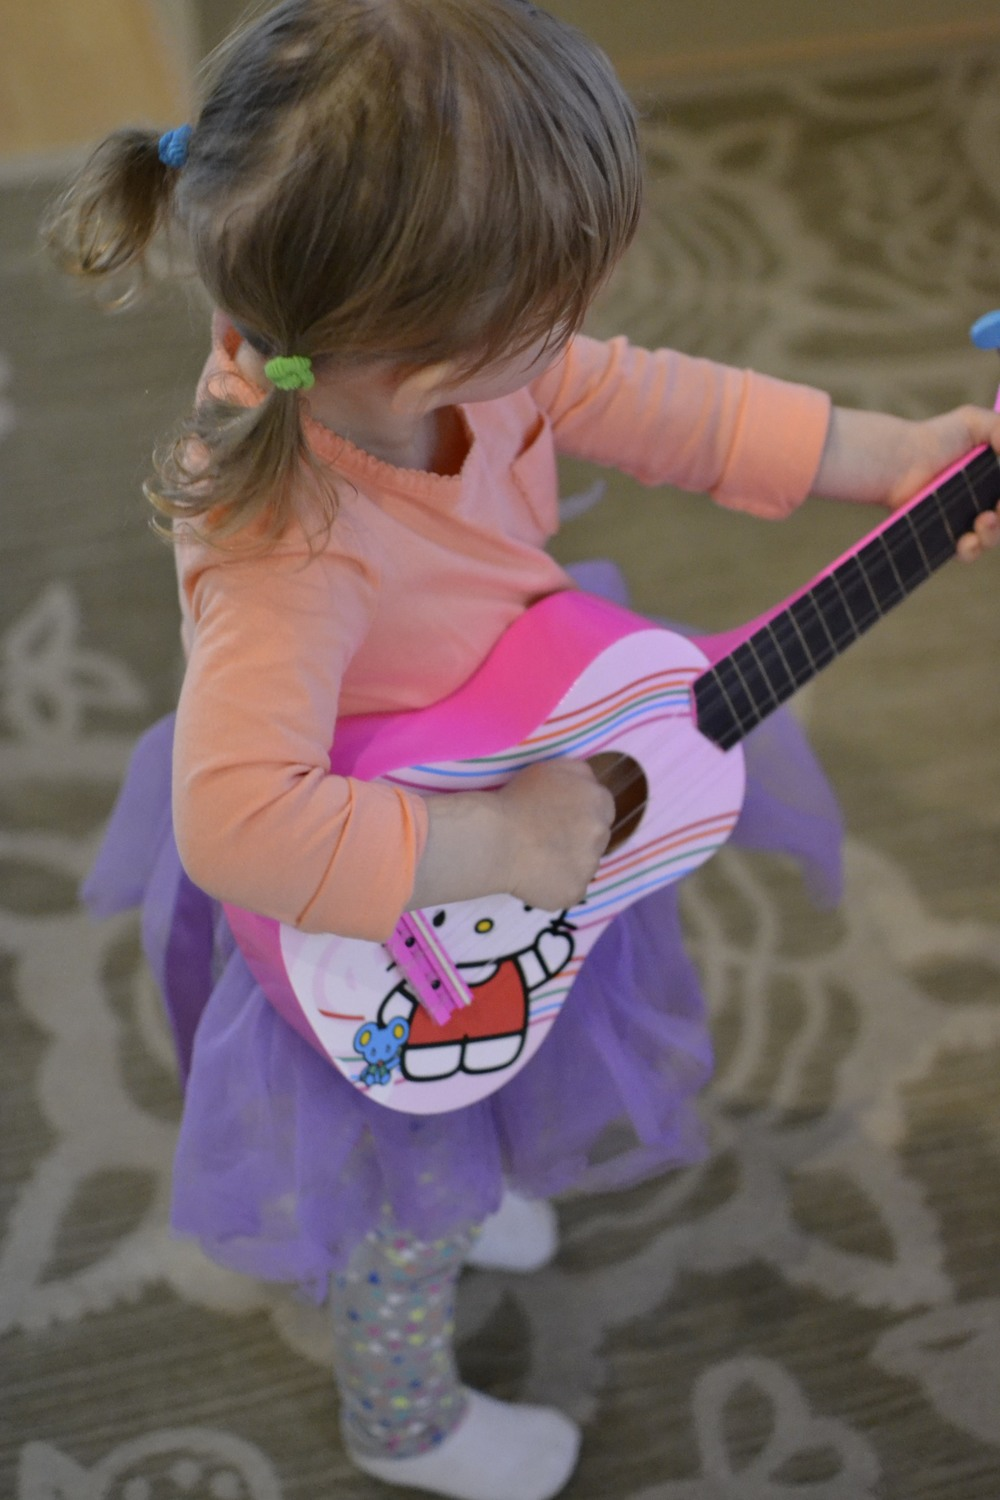 purple tutu wearing and guitar playing...